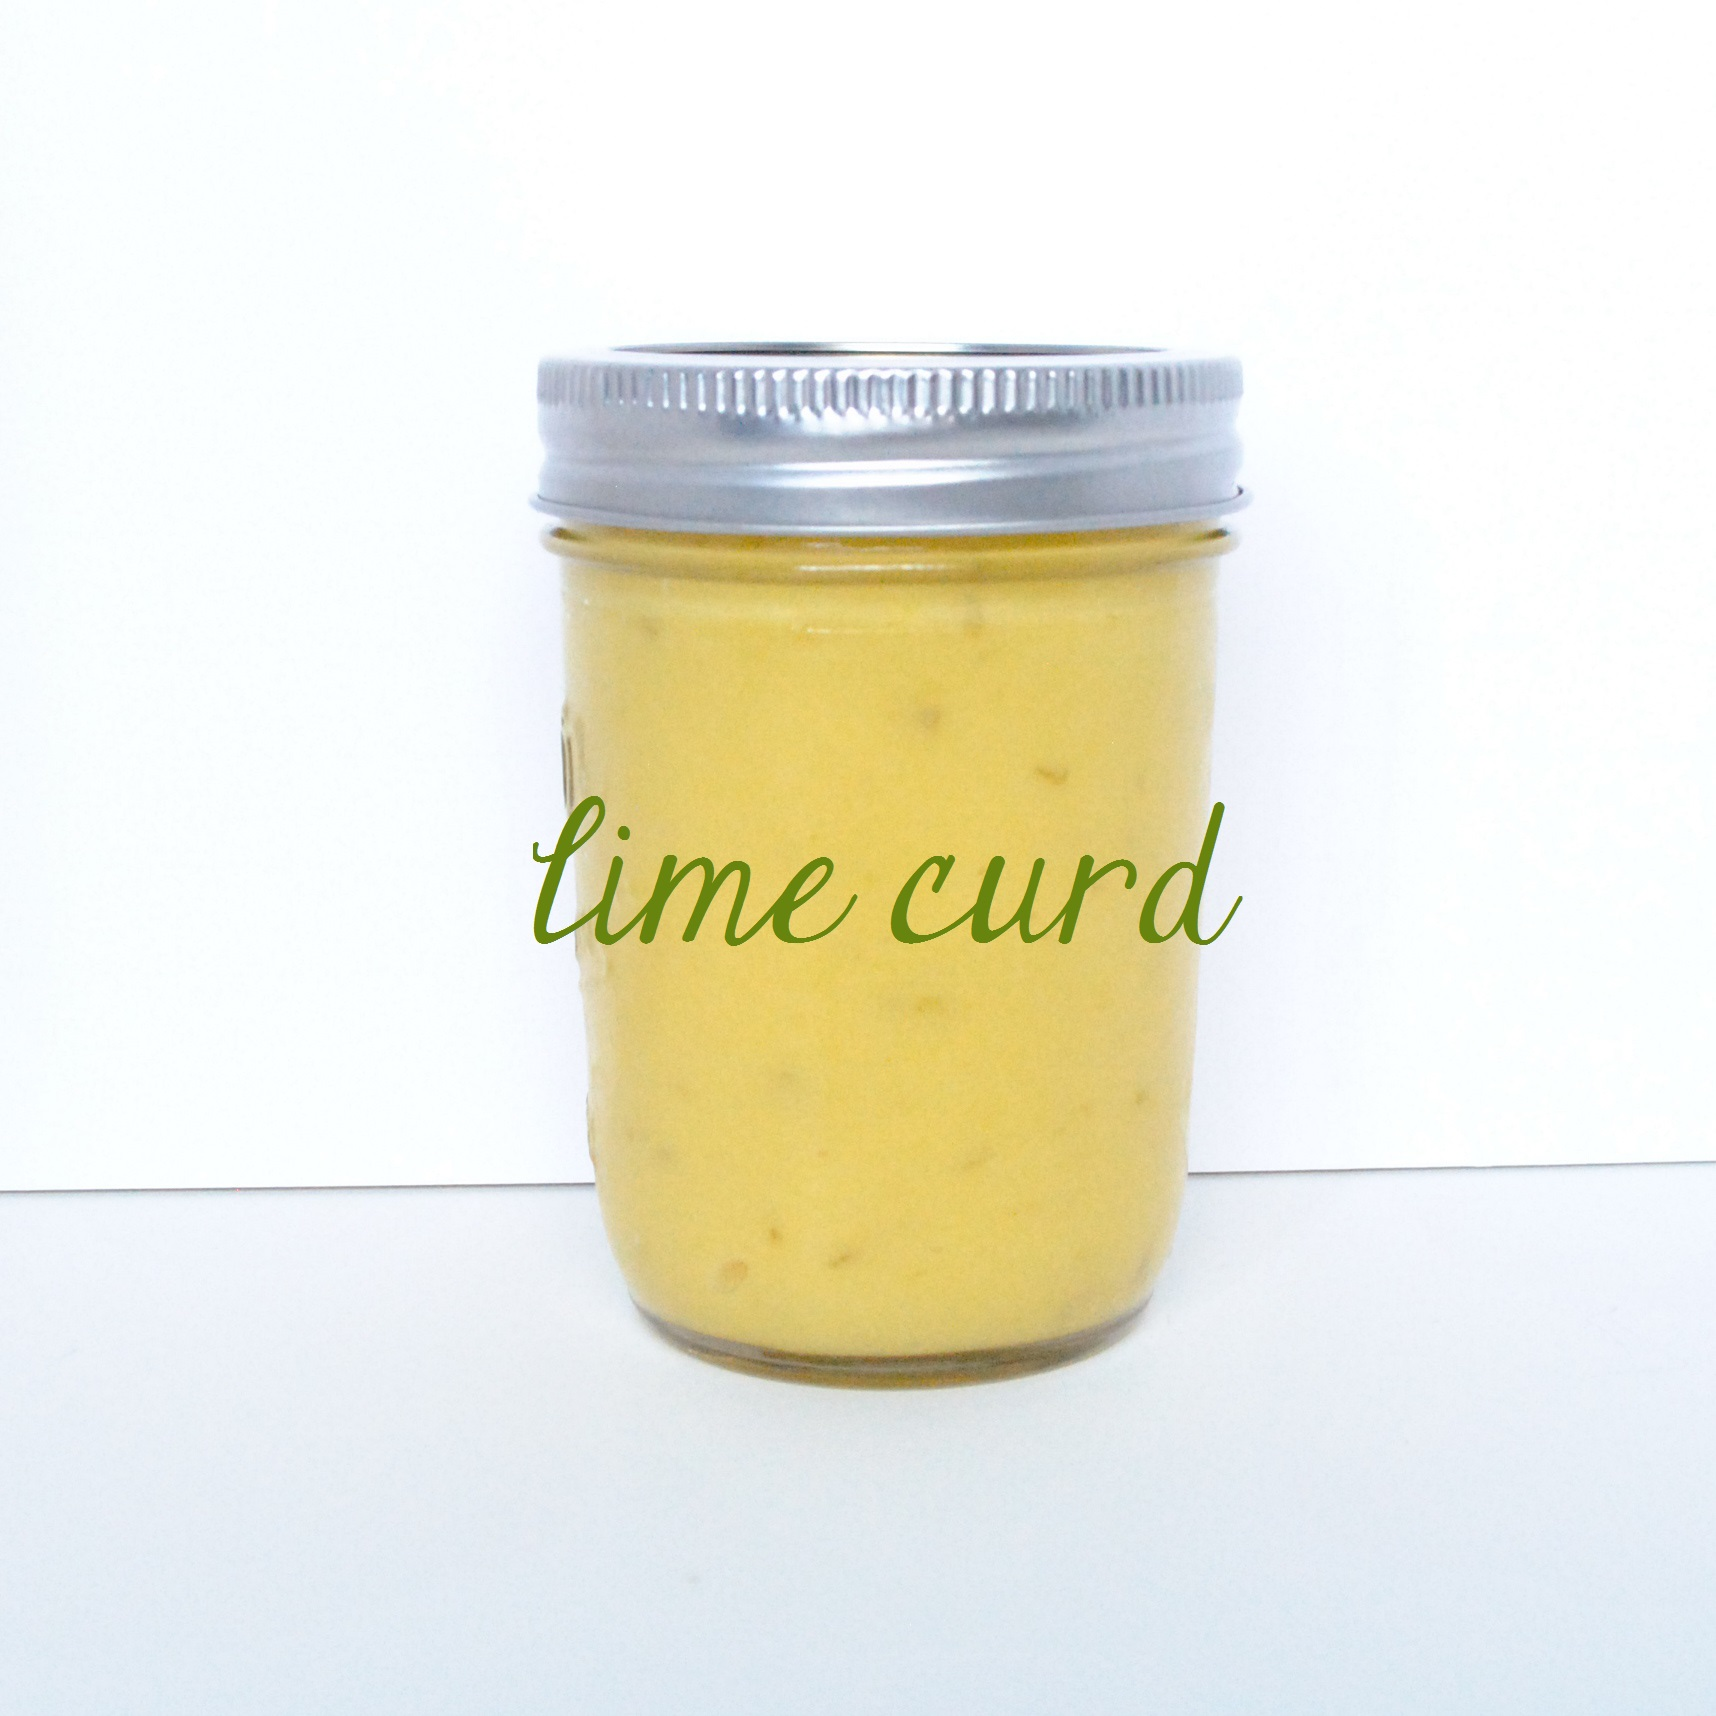 Lime curd | Bowties and fezzes